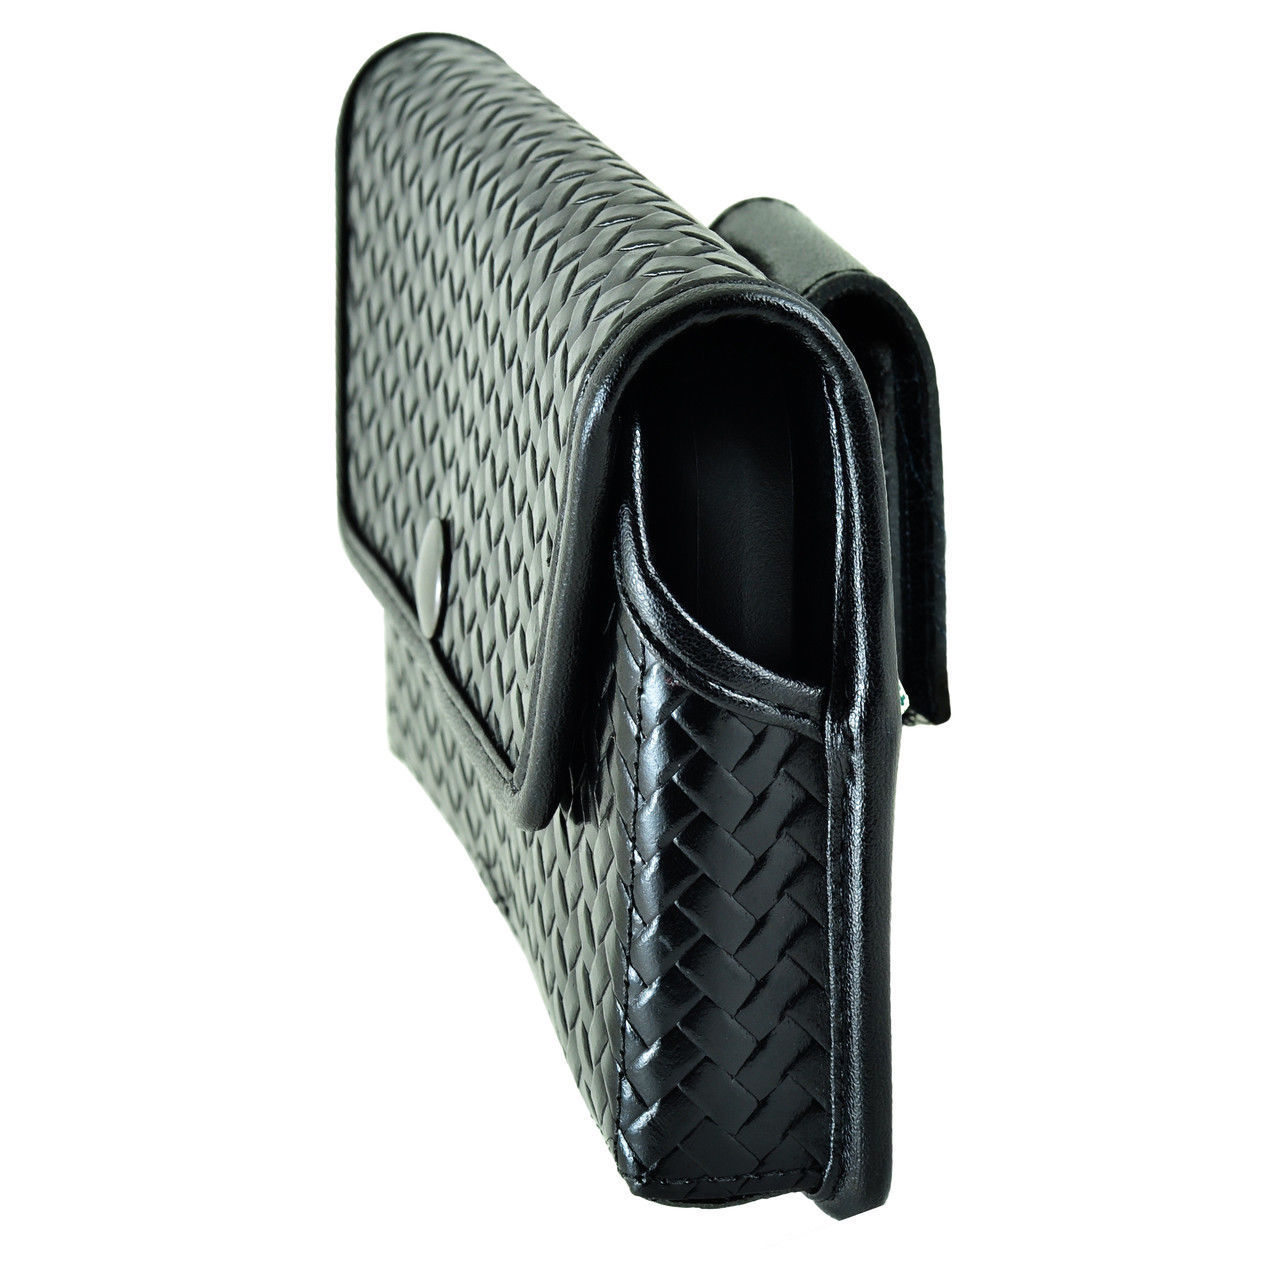 Genuine Leather Basket Weave Rugged Case fits Alcatel Cameo X (AT&T) with a